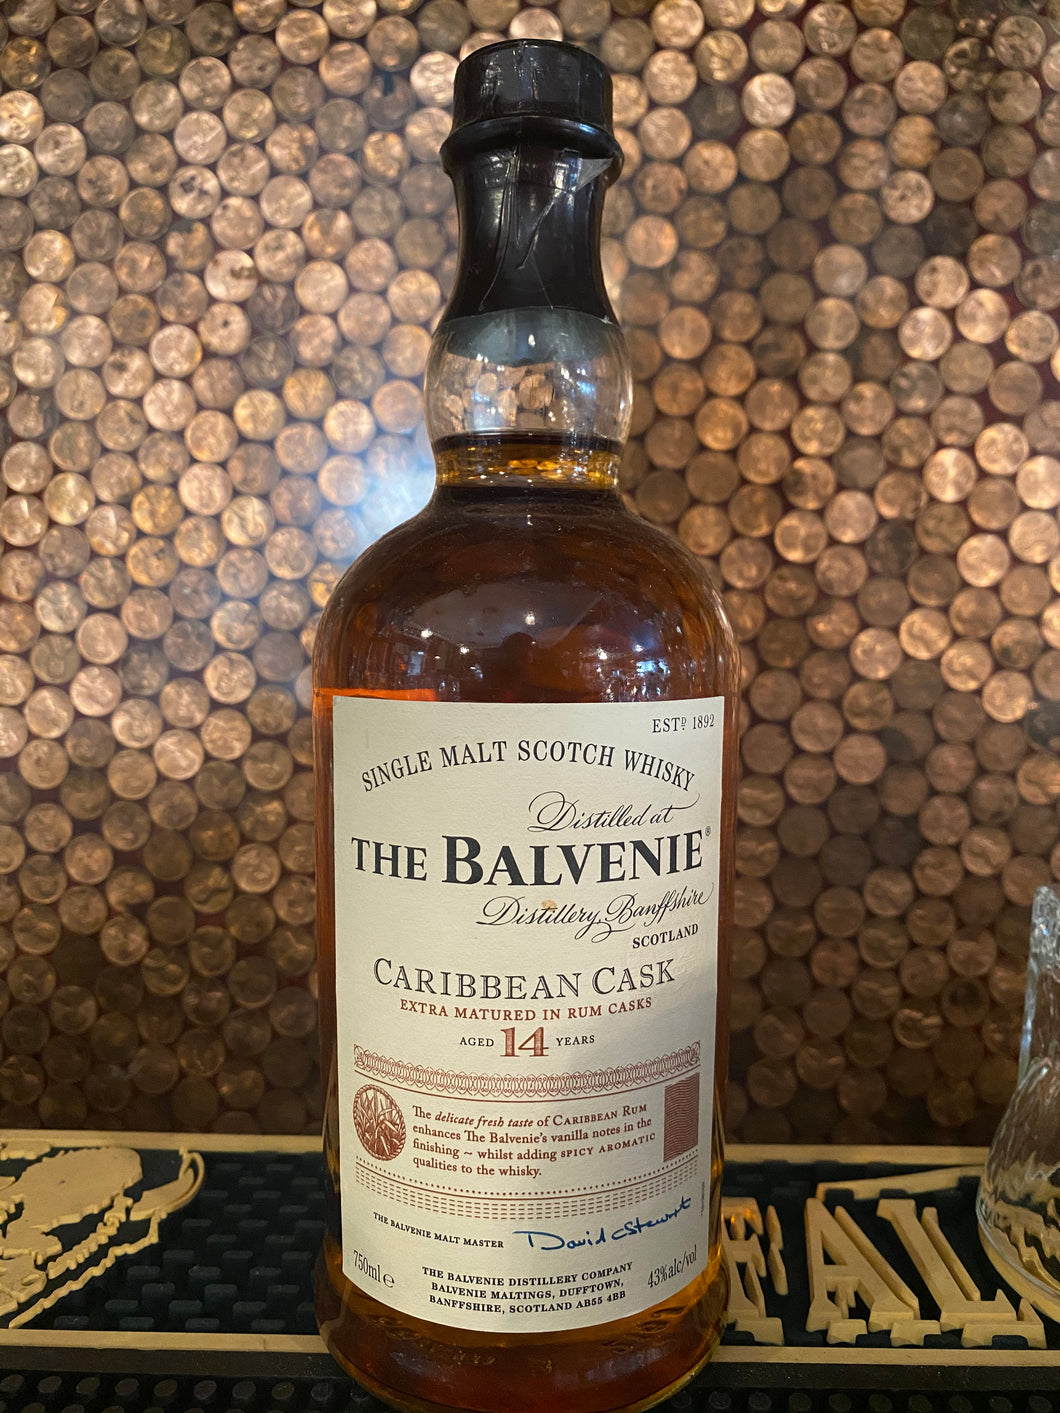 The Balvenie Caribbean Cask 14 Year